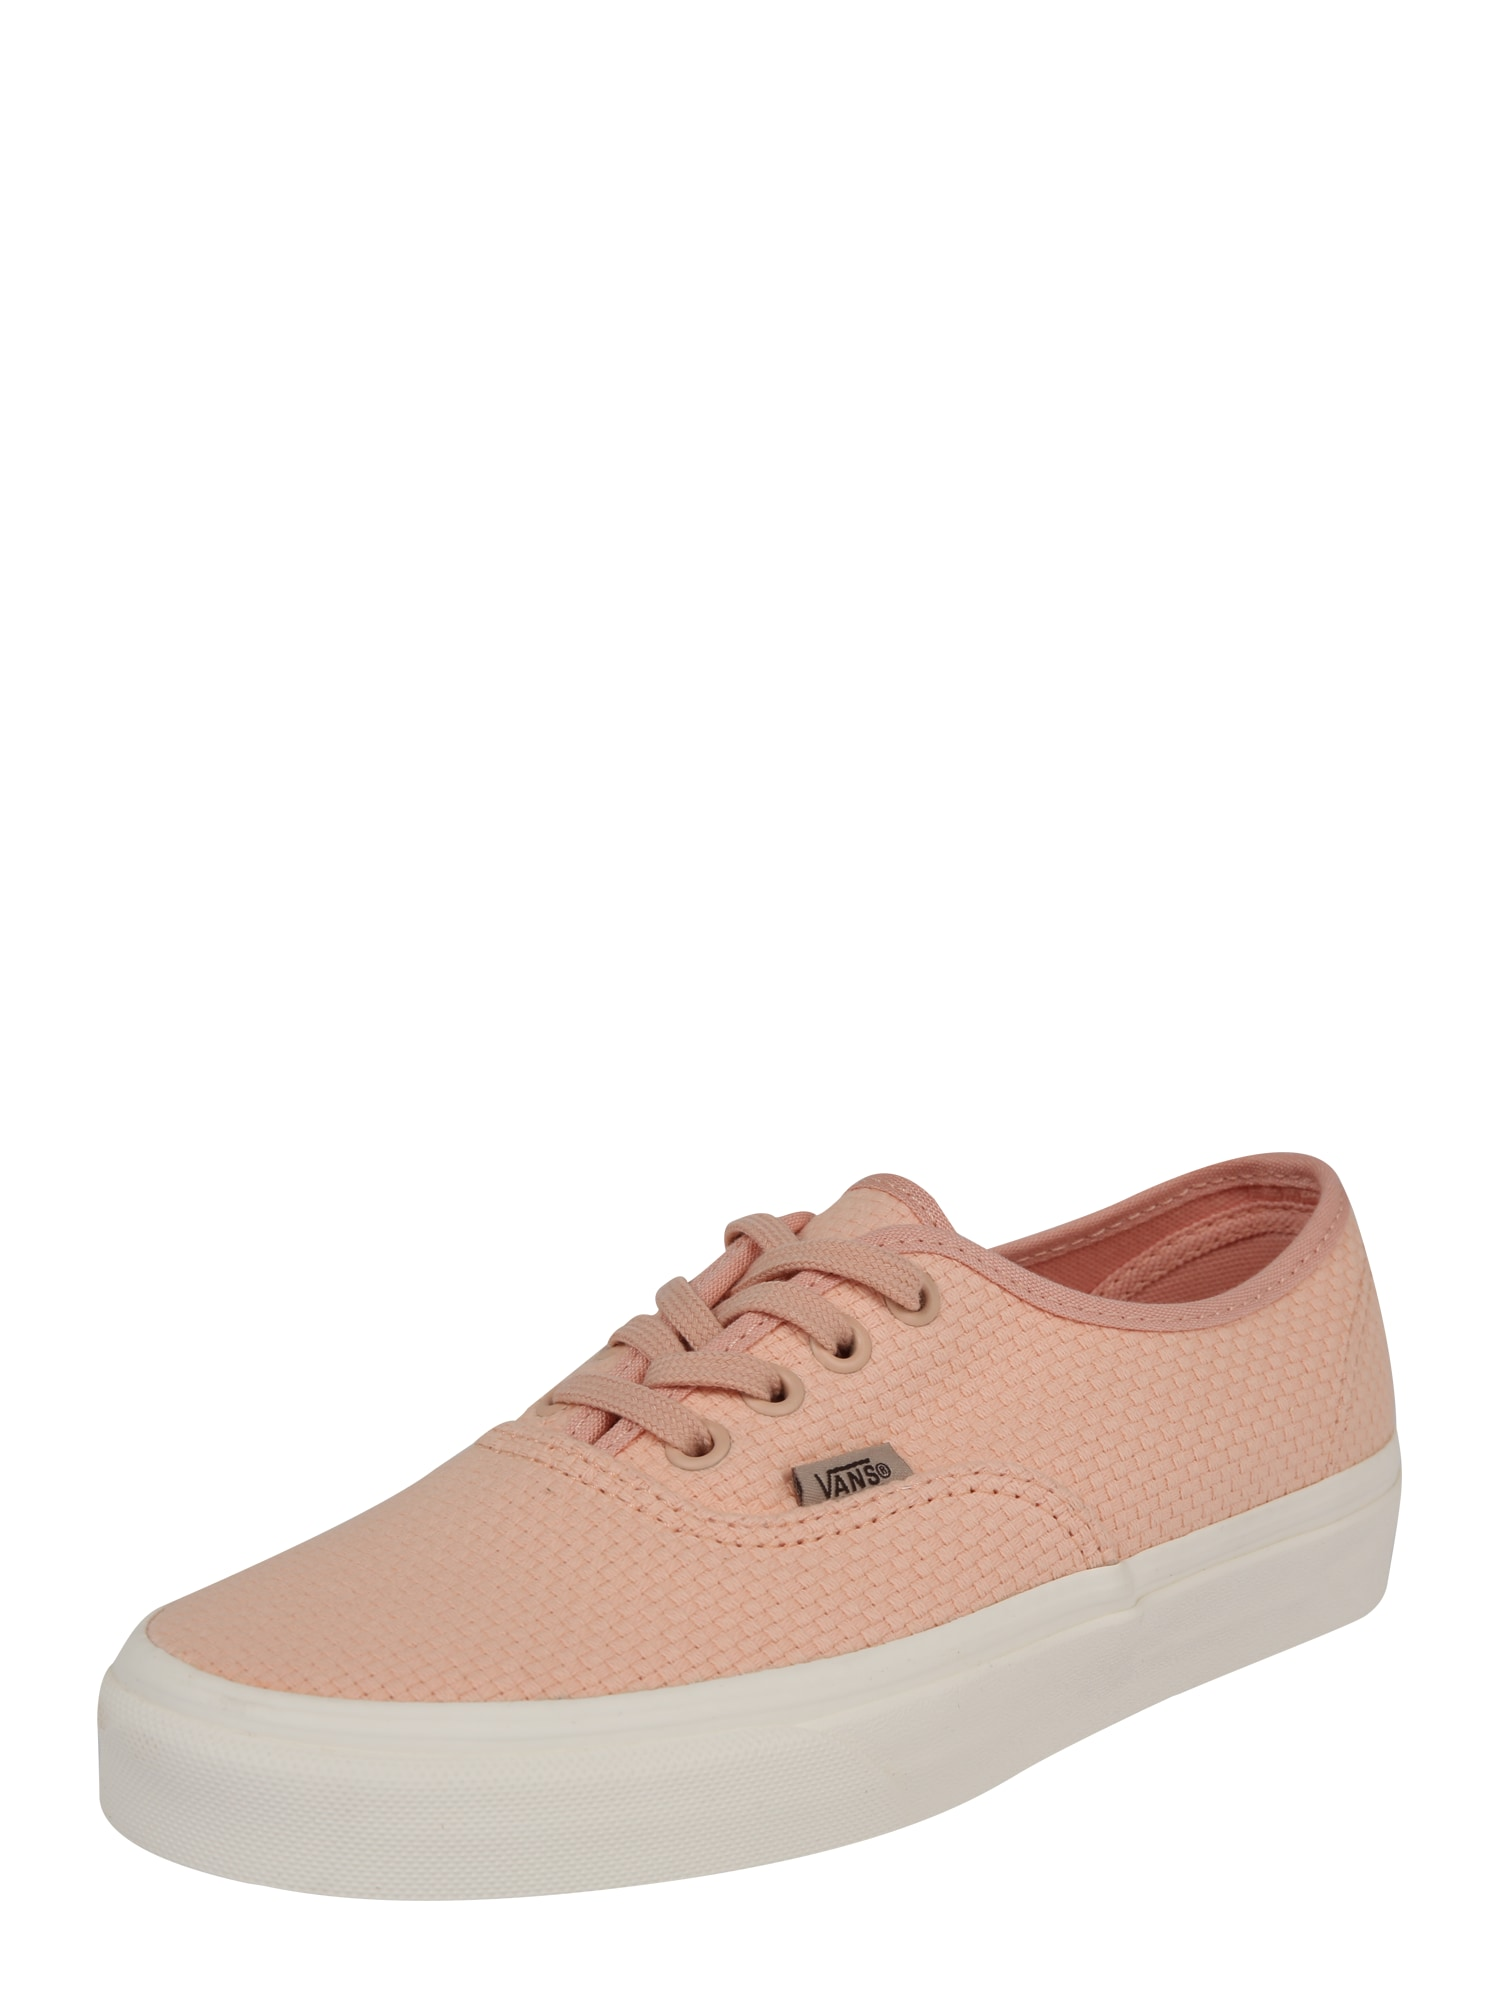 VANS, Dames Sneakers laag 'Authentic', koraal / wit